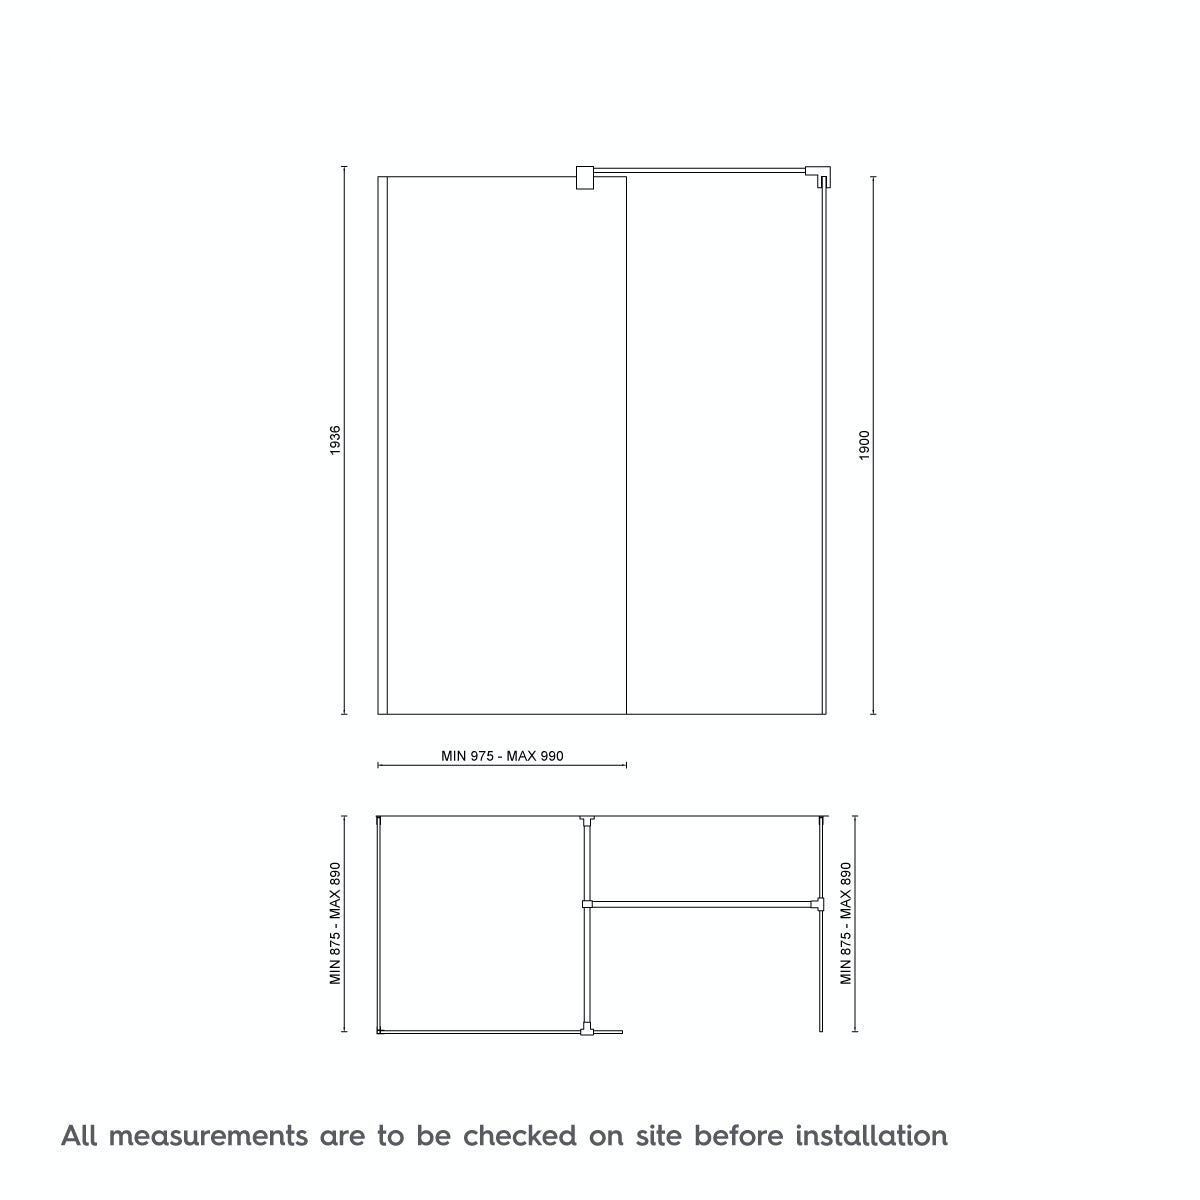 Dimensions for 1600 x 900